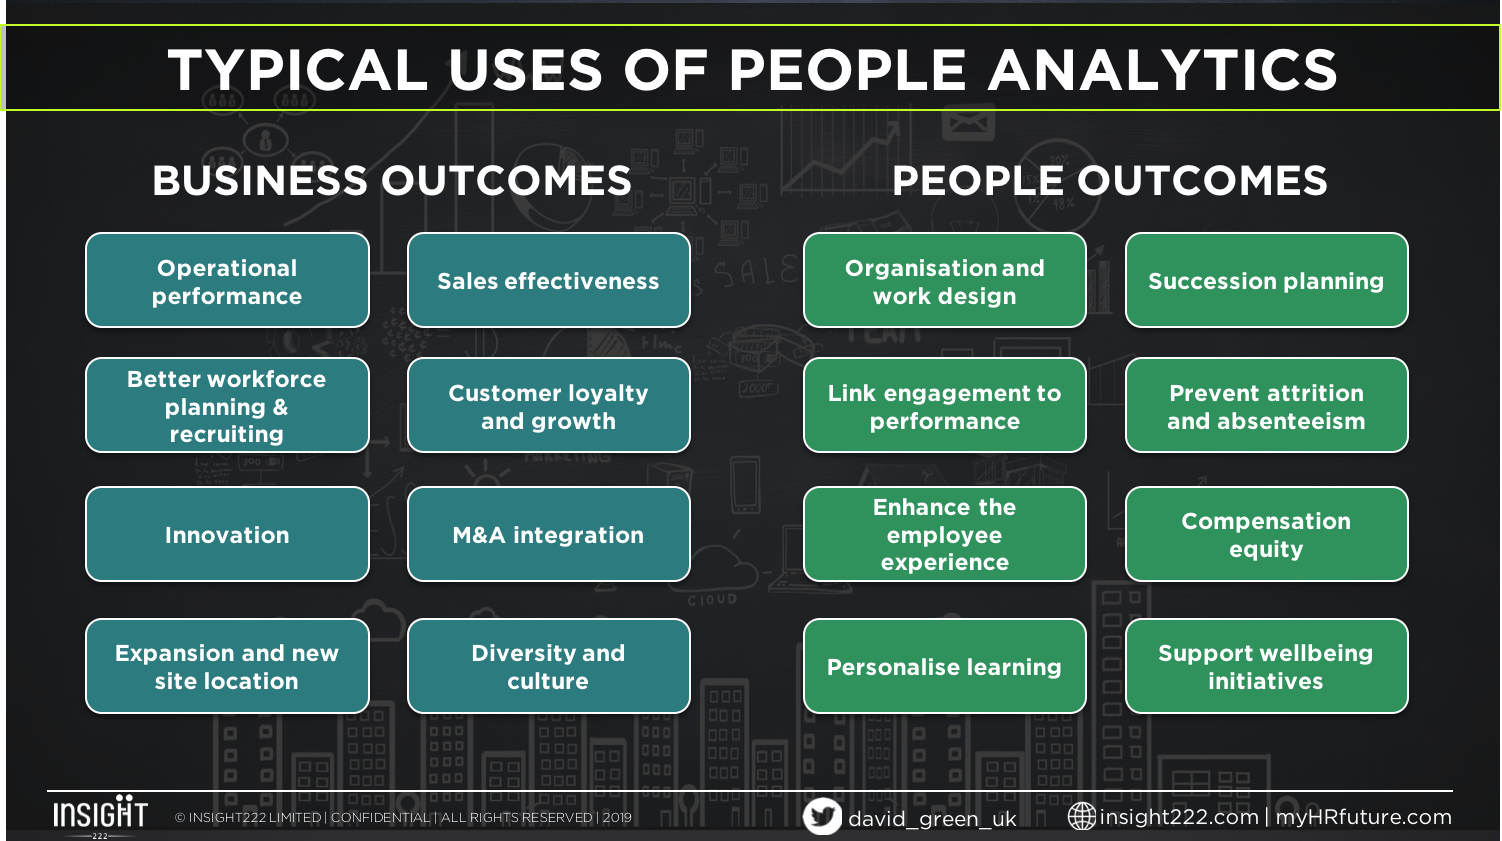 FIG 7:    Typical uses of People Analytics in organisations (Source: David Green)